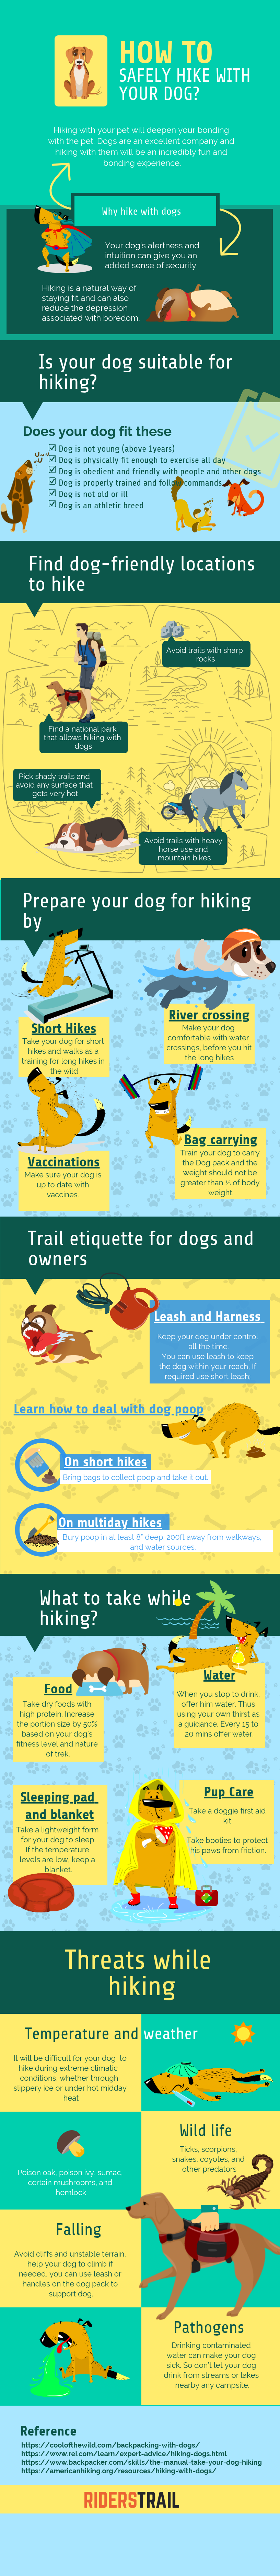 how to safely hike with your dogs